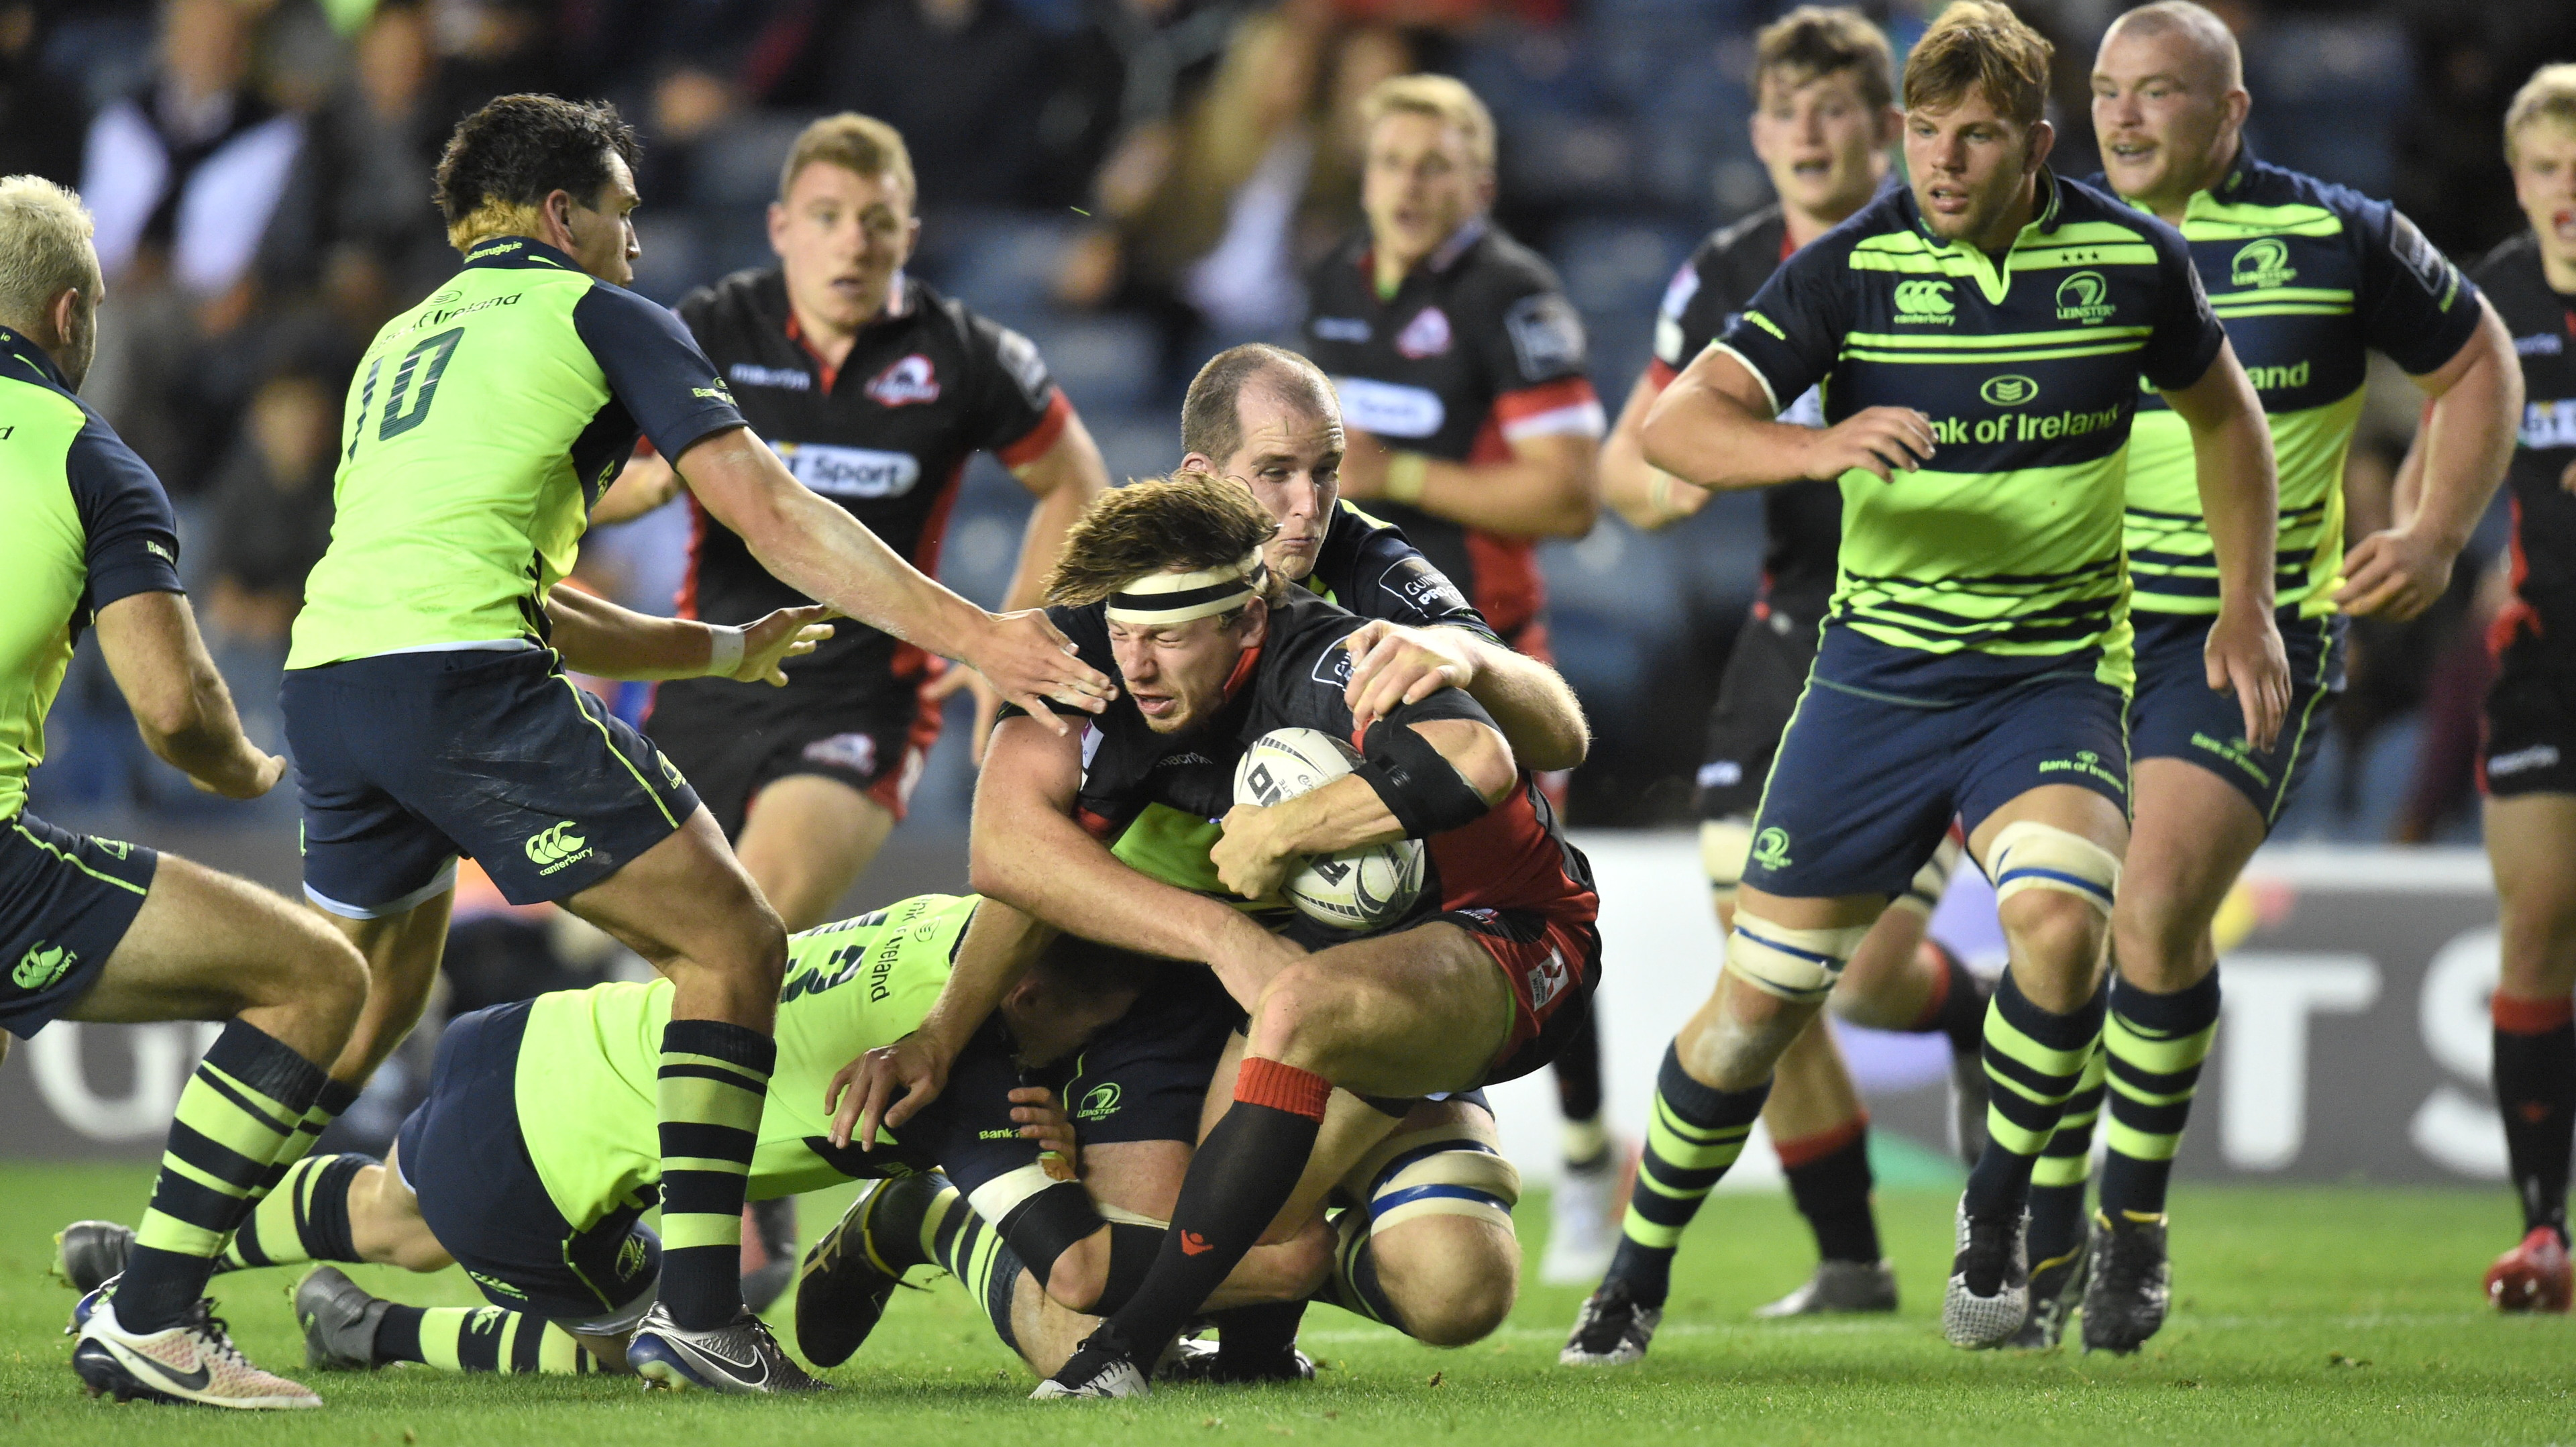 Hamish Watson scores a second half try for Edinburgh, but they'd left themselves too much to do against Leinster.